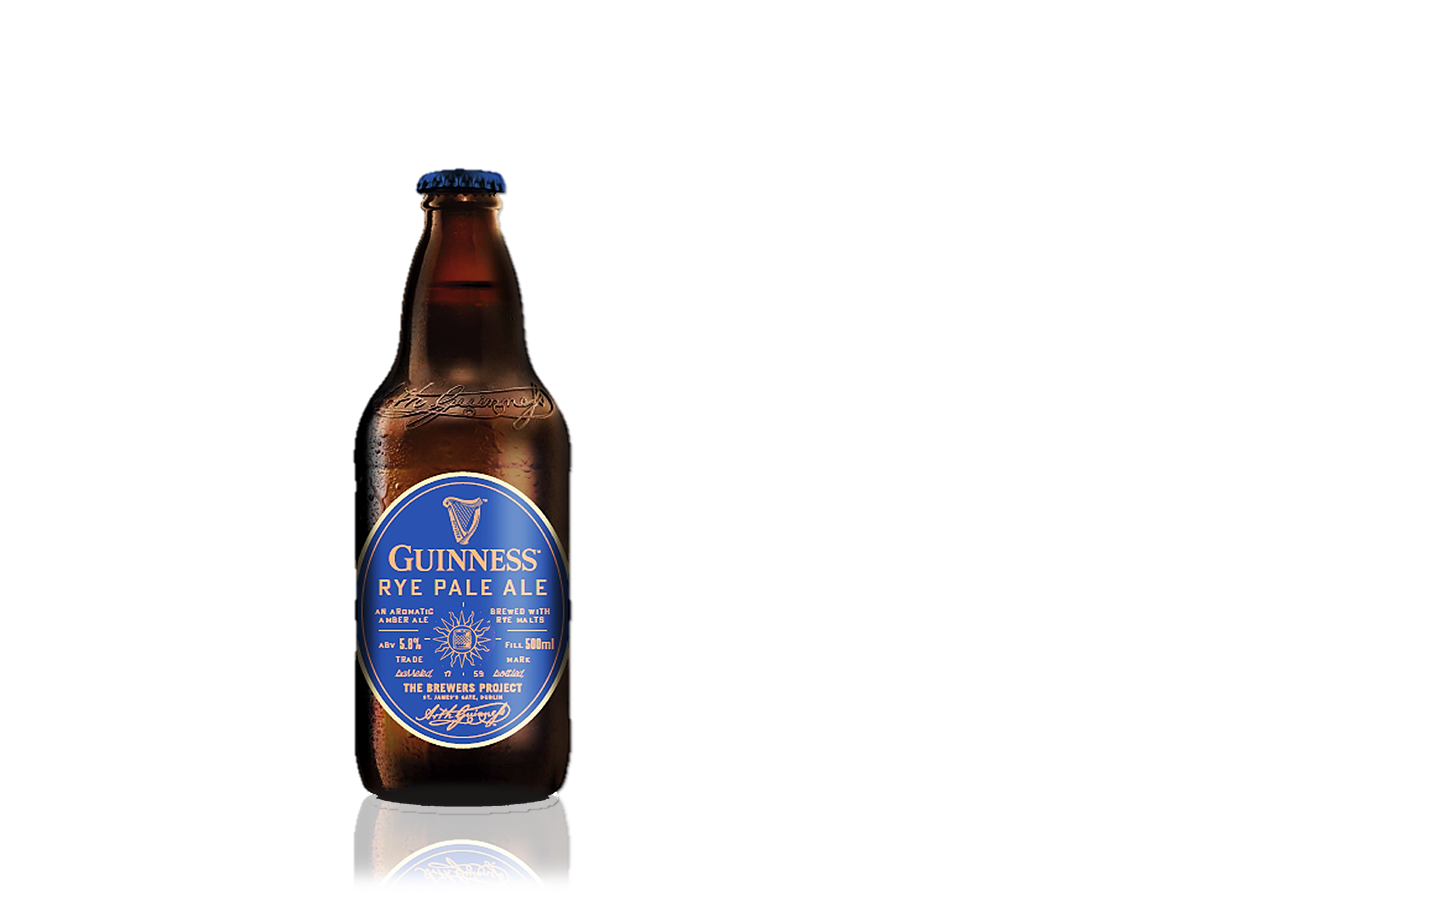 Guinness bottle png. Beer made of more